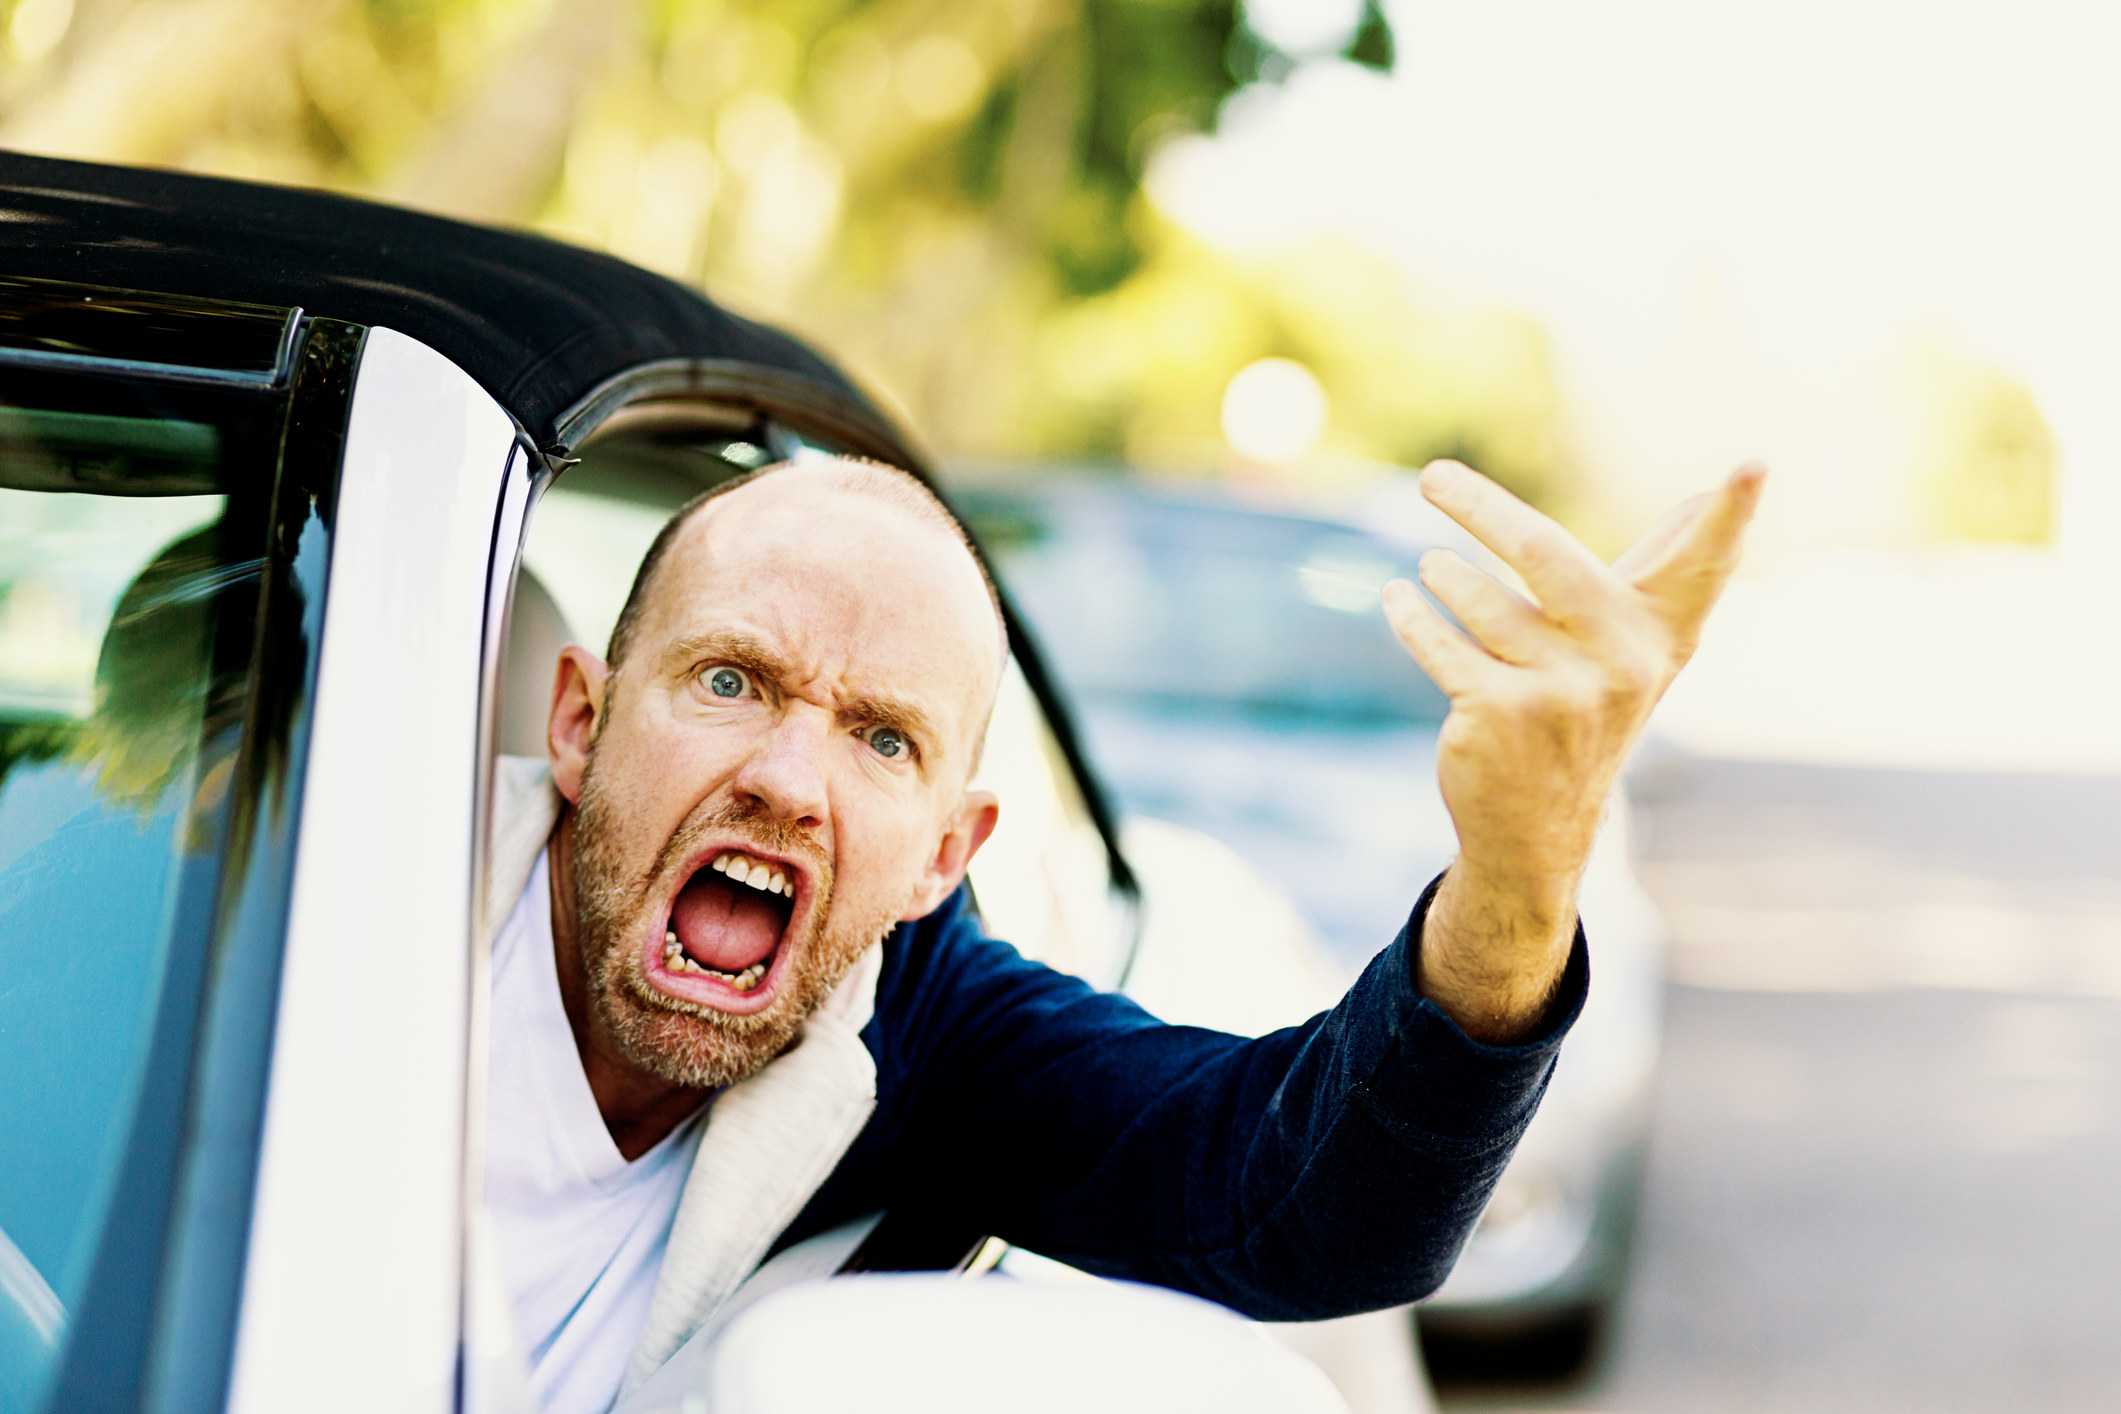 Man leaning out the driver's seat of a car shouting and pointing